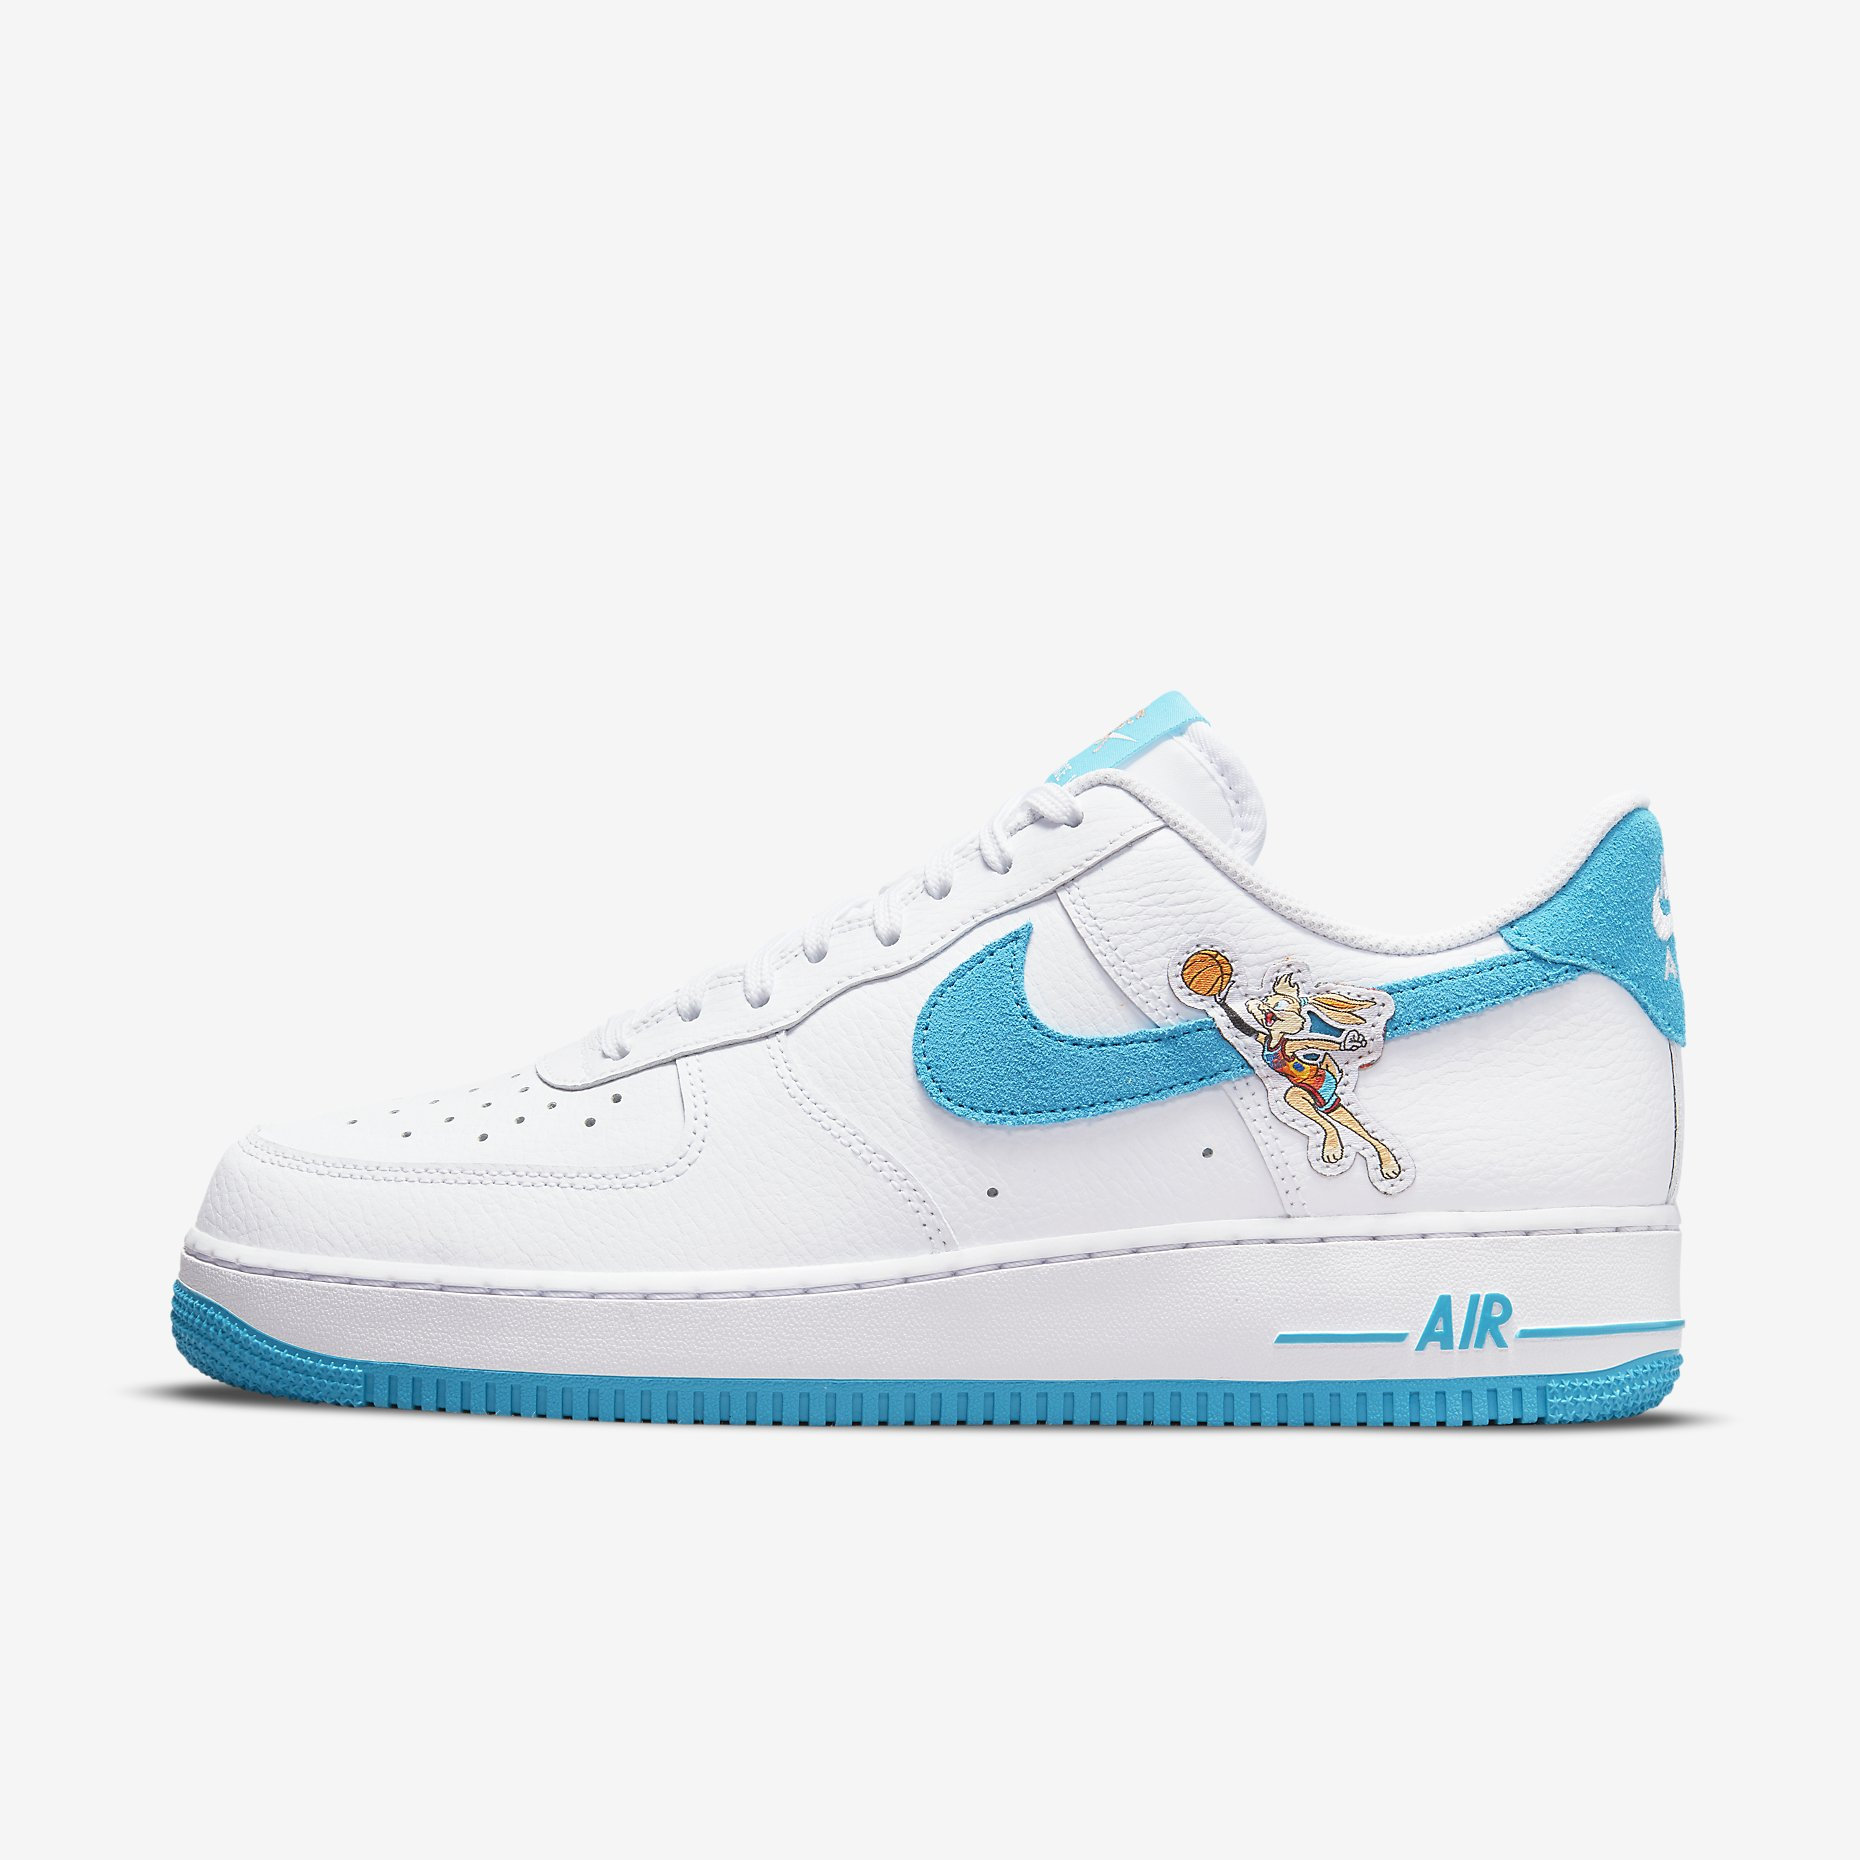 Space Jam x Nike Air Force 1 '07 'Hare'